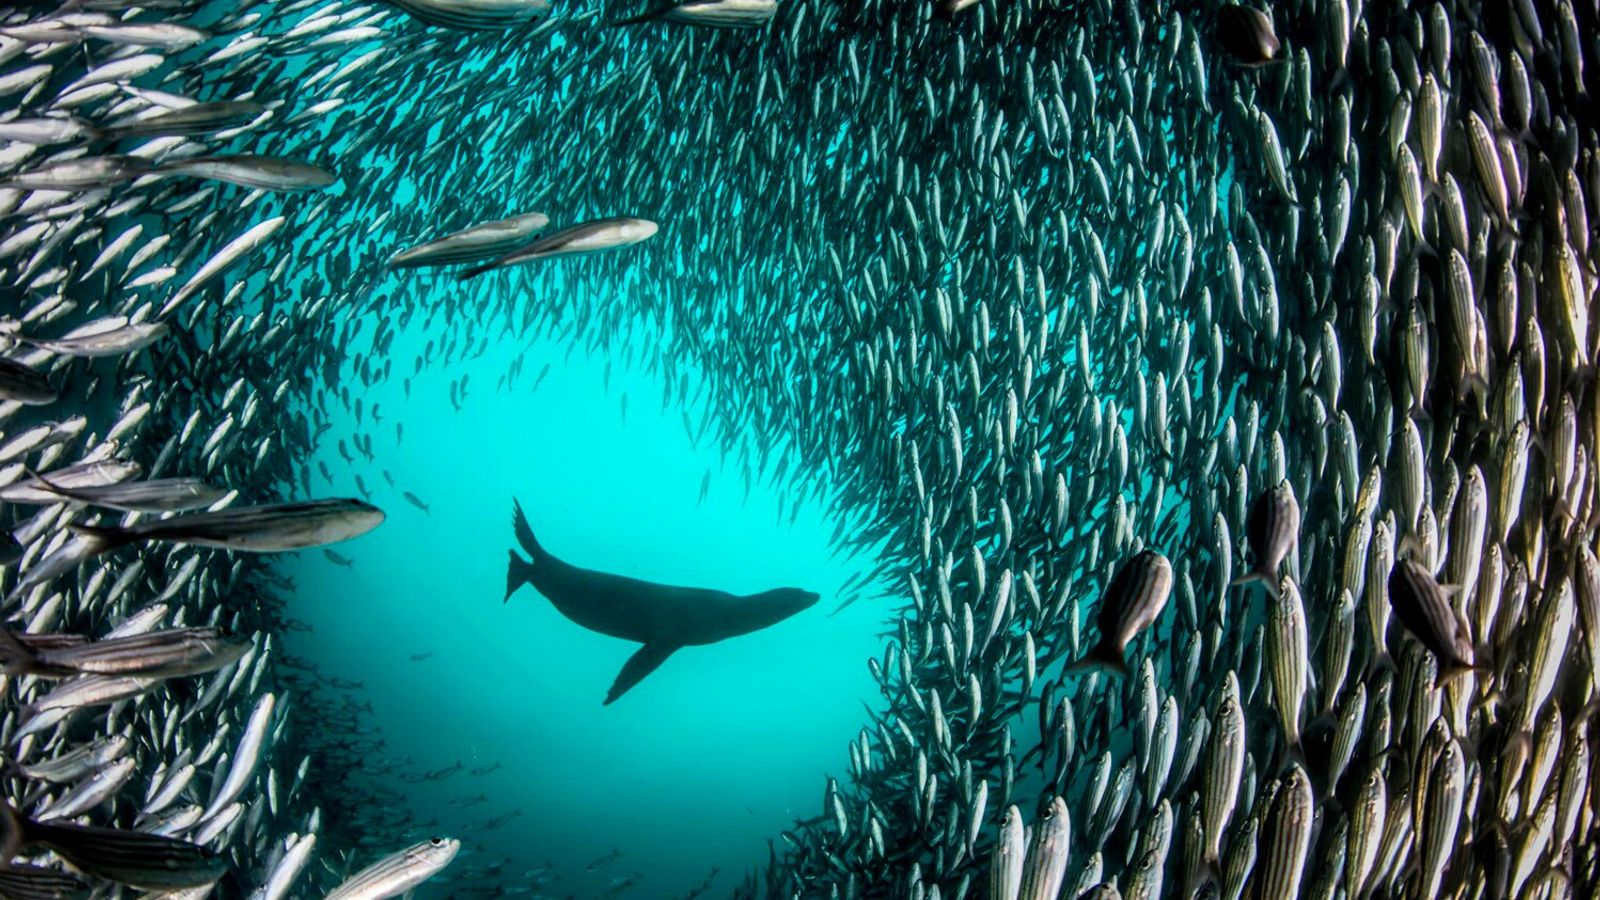 Learn about National Geographic's Ocean Impact initiative